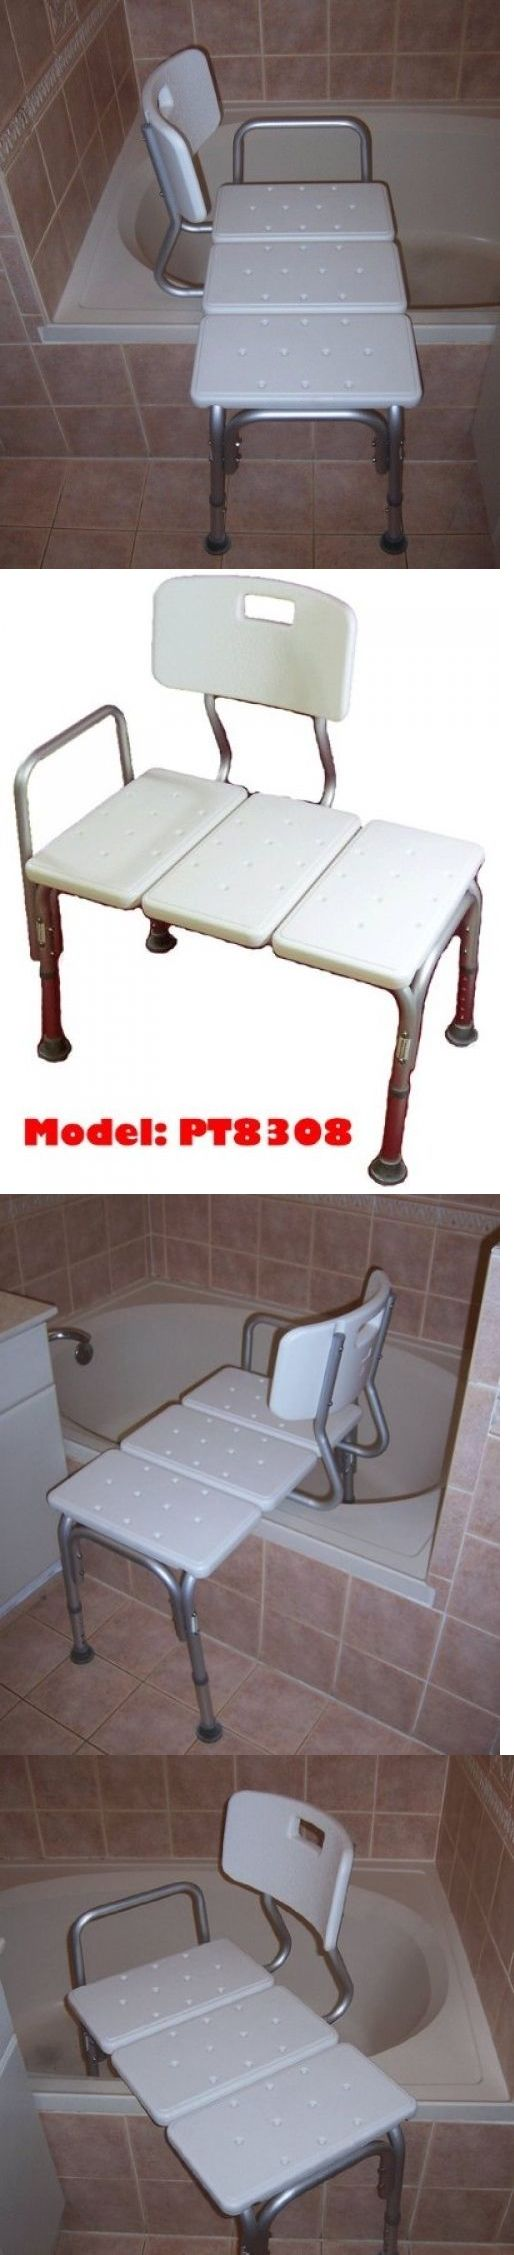 Americans with disabilities act ada coastal bath and kitchen - Shower And Bath Seats Shower Chairs For Elderly Medical Disabled Handicapped Bath Bathtub Seat Bench